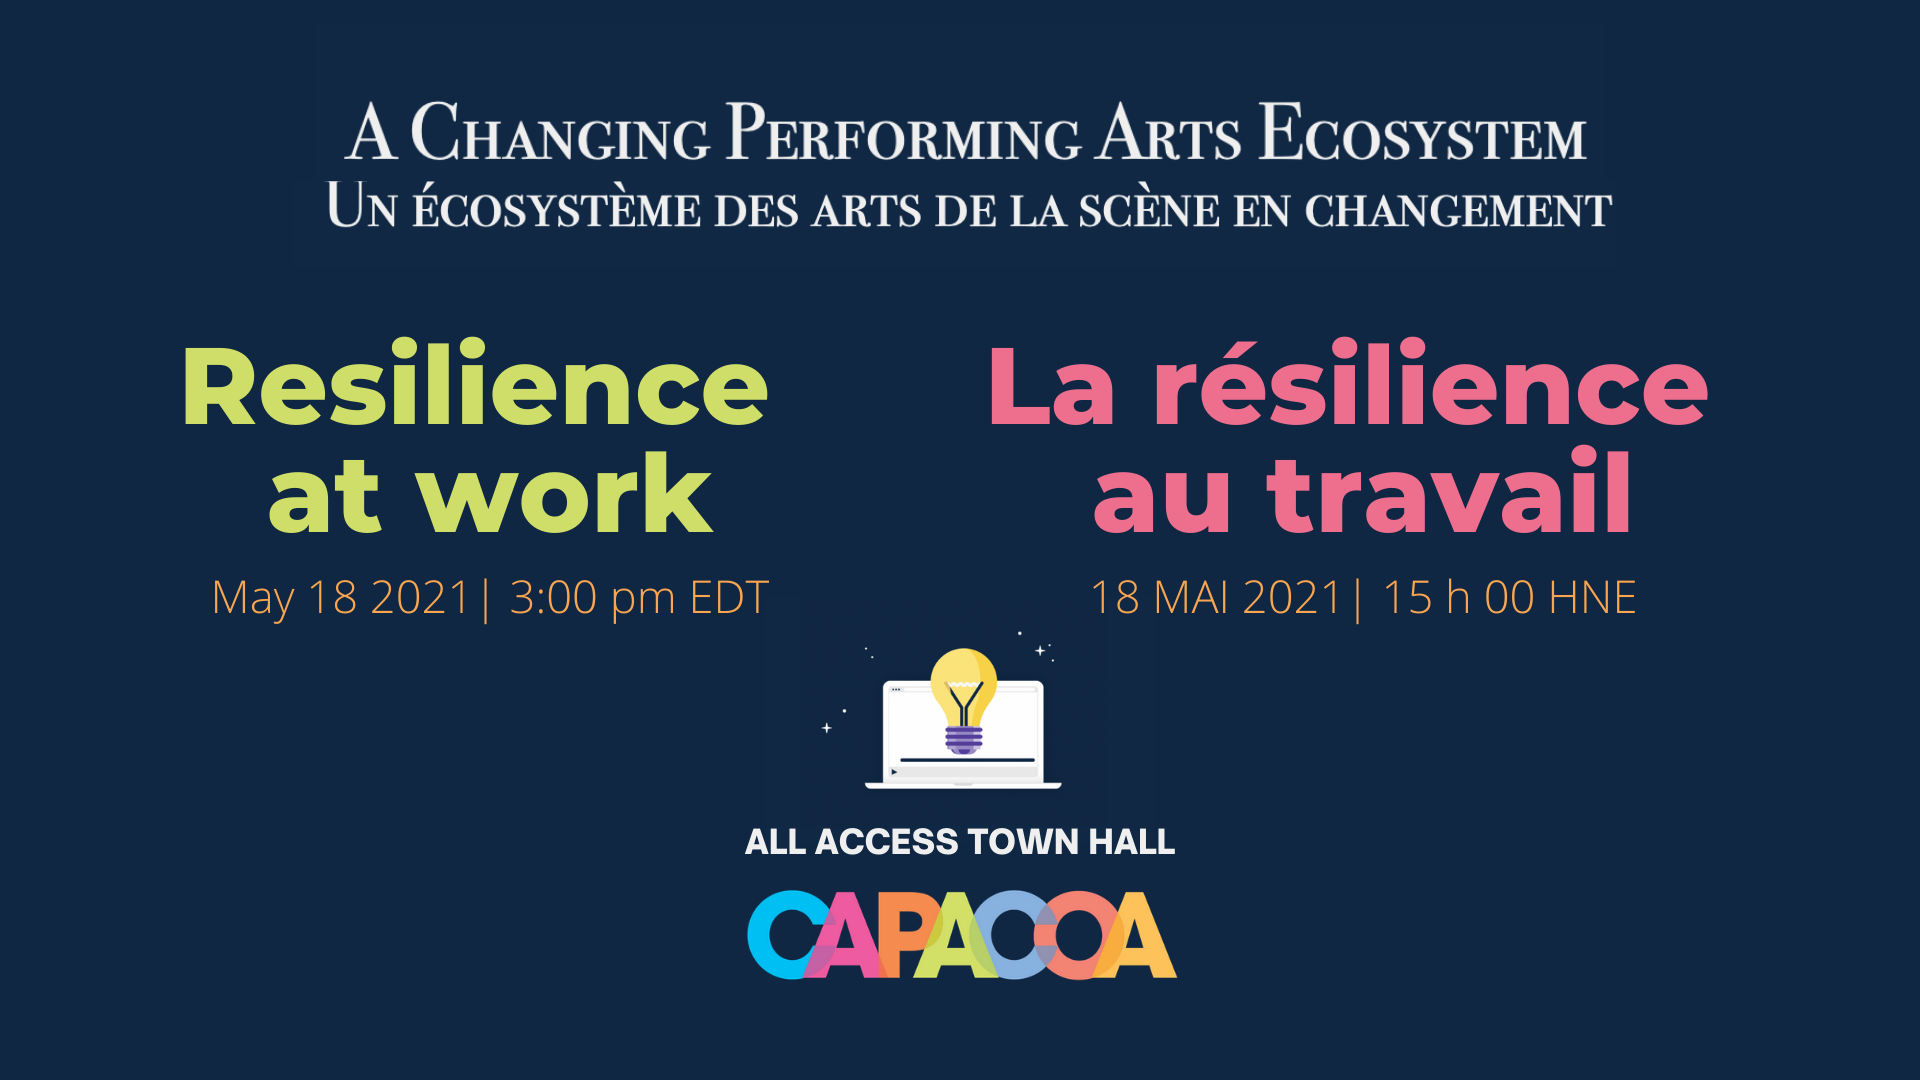 A banner showing the title of the town hall: A Changing Performing Arts Ecosystem: Resilience at work